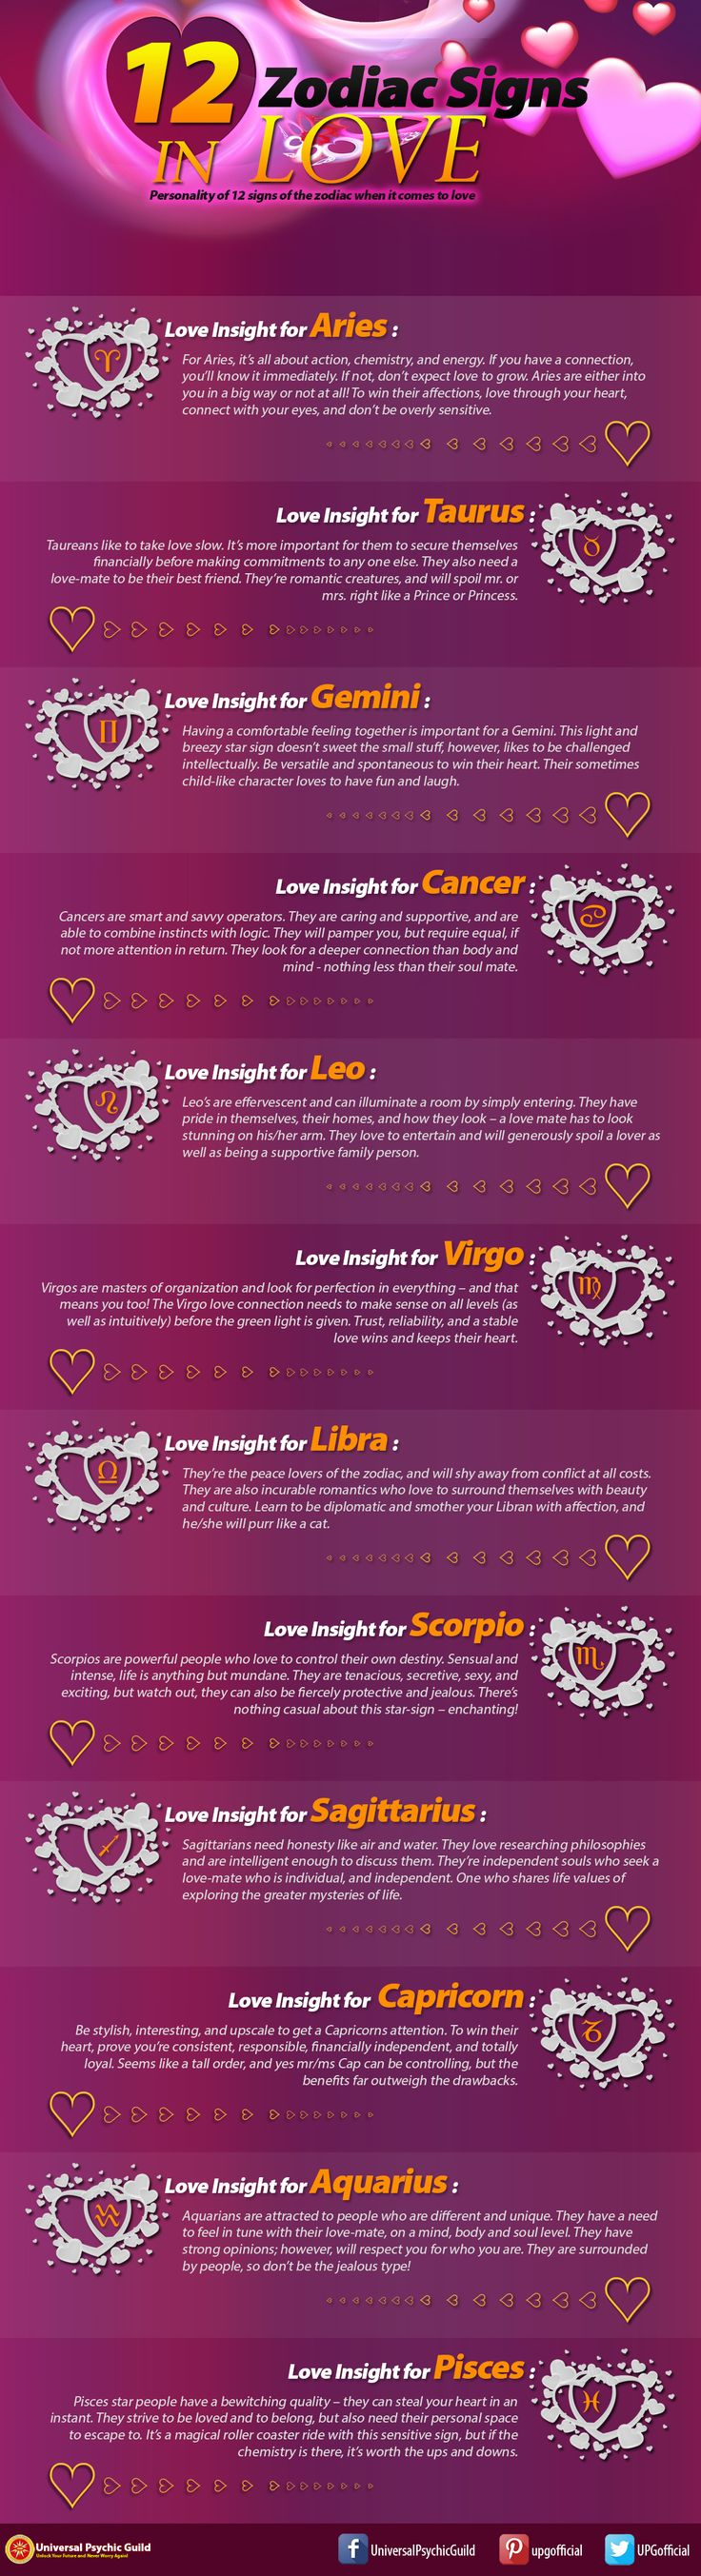 12 #ZodiacSigns LOVE Guide by PsychicGuild.com